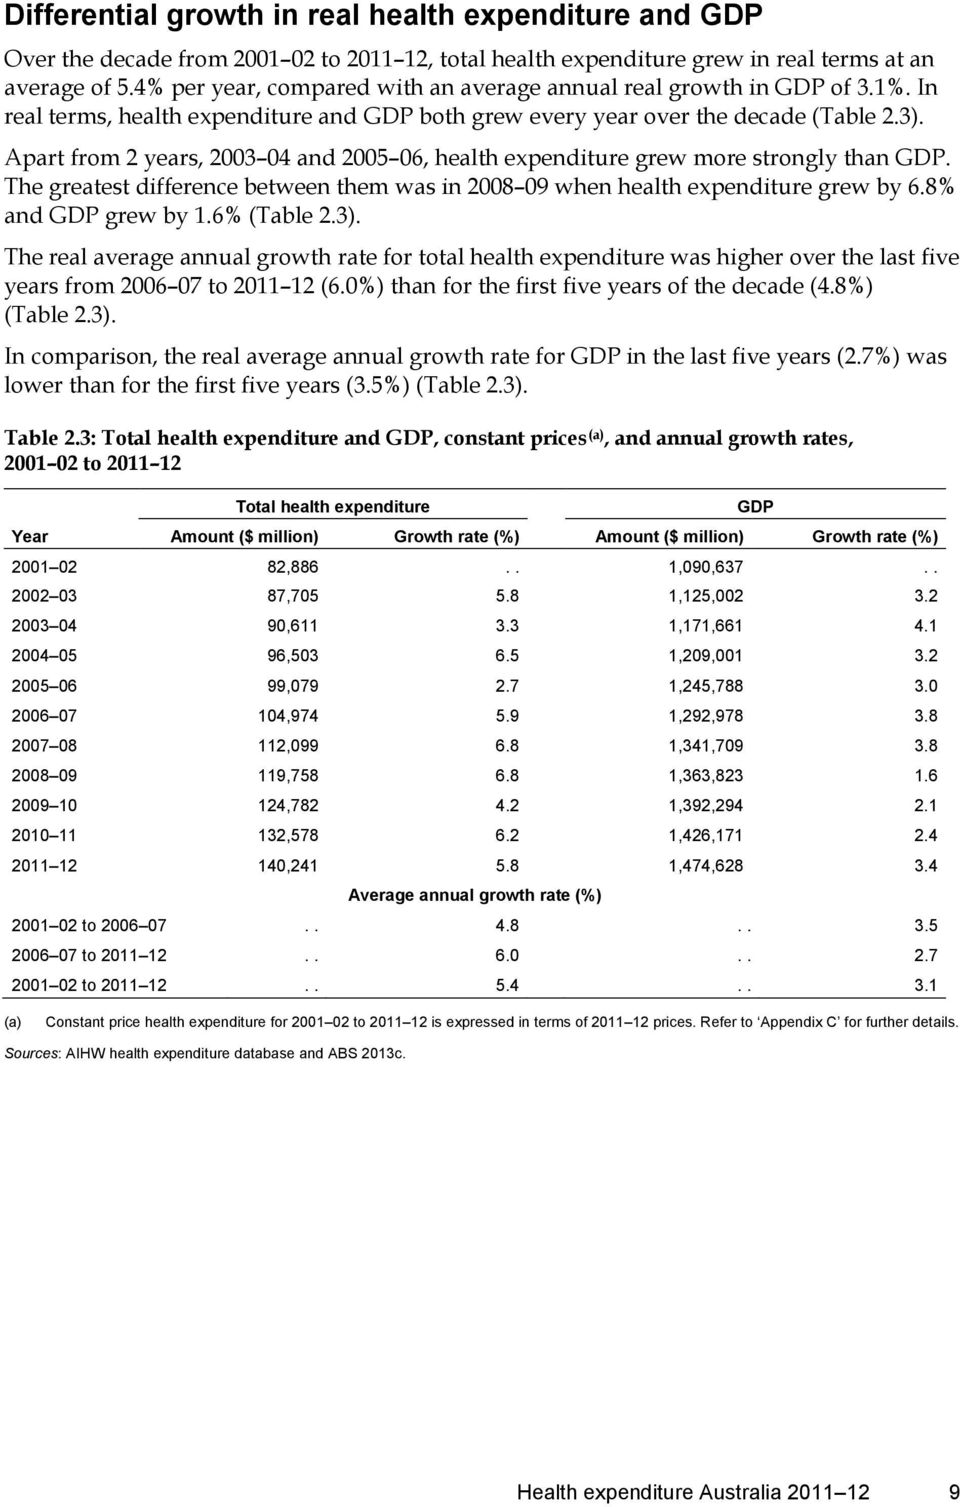 Apart from 2 years, 2003 04 and 2005 06, health expenditure grew more strongly than GDP. The greatest difference between them was in 2008 09 when health expenditure grew by 6.8% and GDP grew by 1.